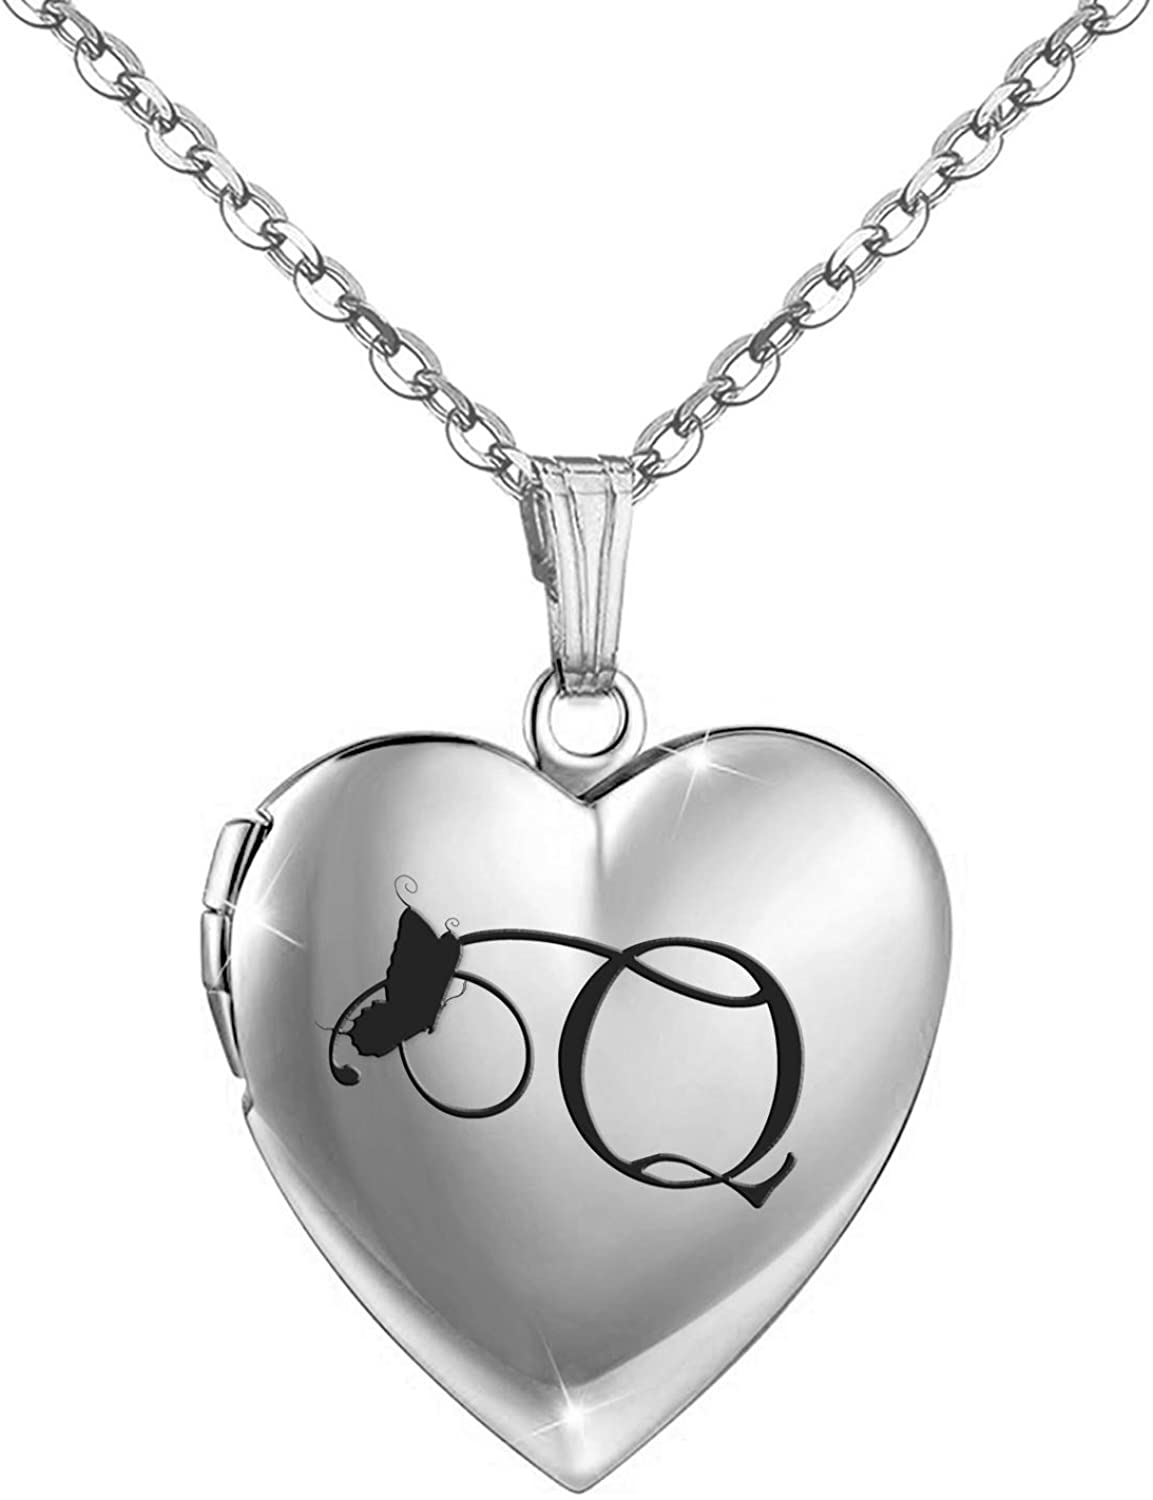 Butterfly Locket Necklace that Holds Pictures Initial Alphabet Letter Heart Shaped Photo Memory Locket Pendant Necklace